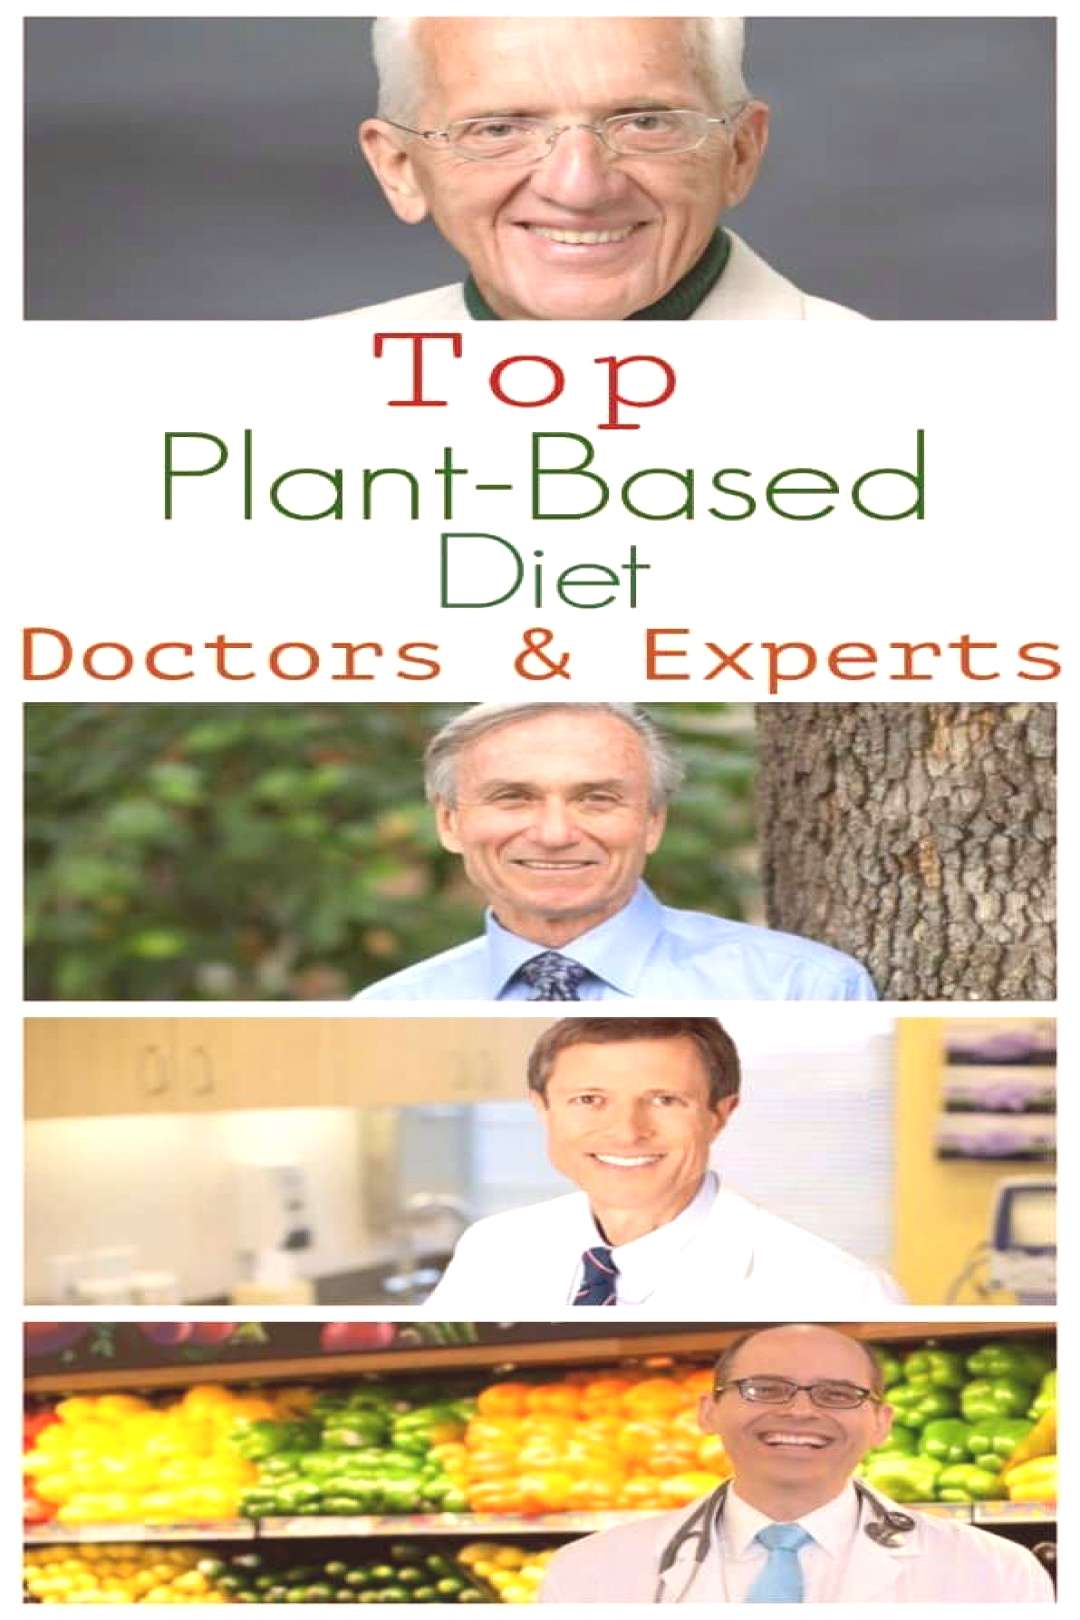 Top Plant-Based Doctors & Experts#doctors